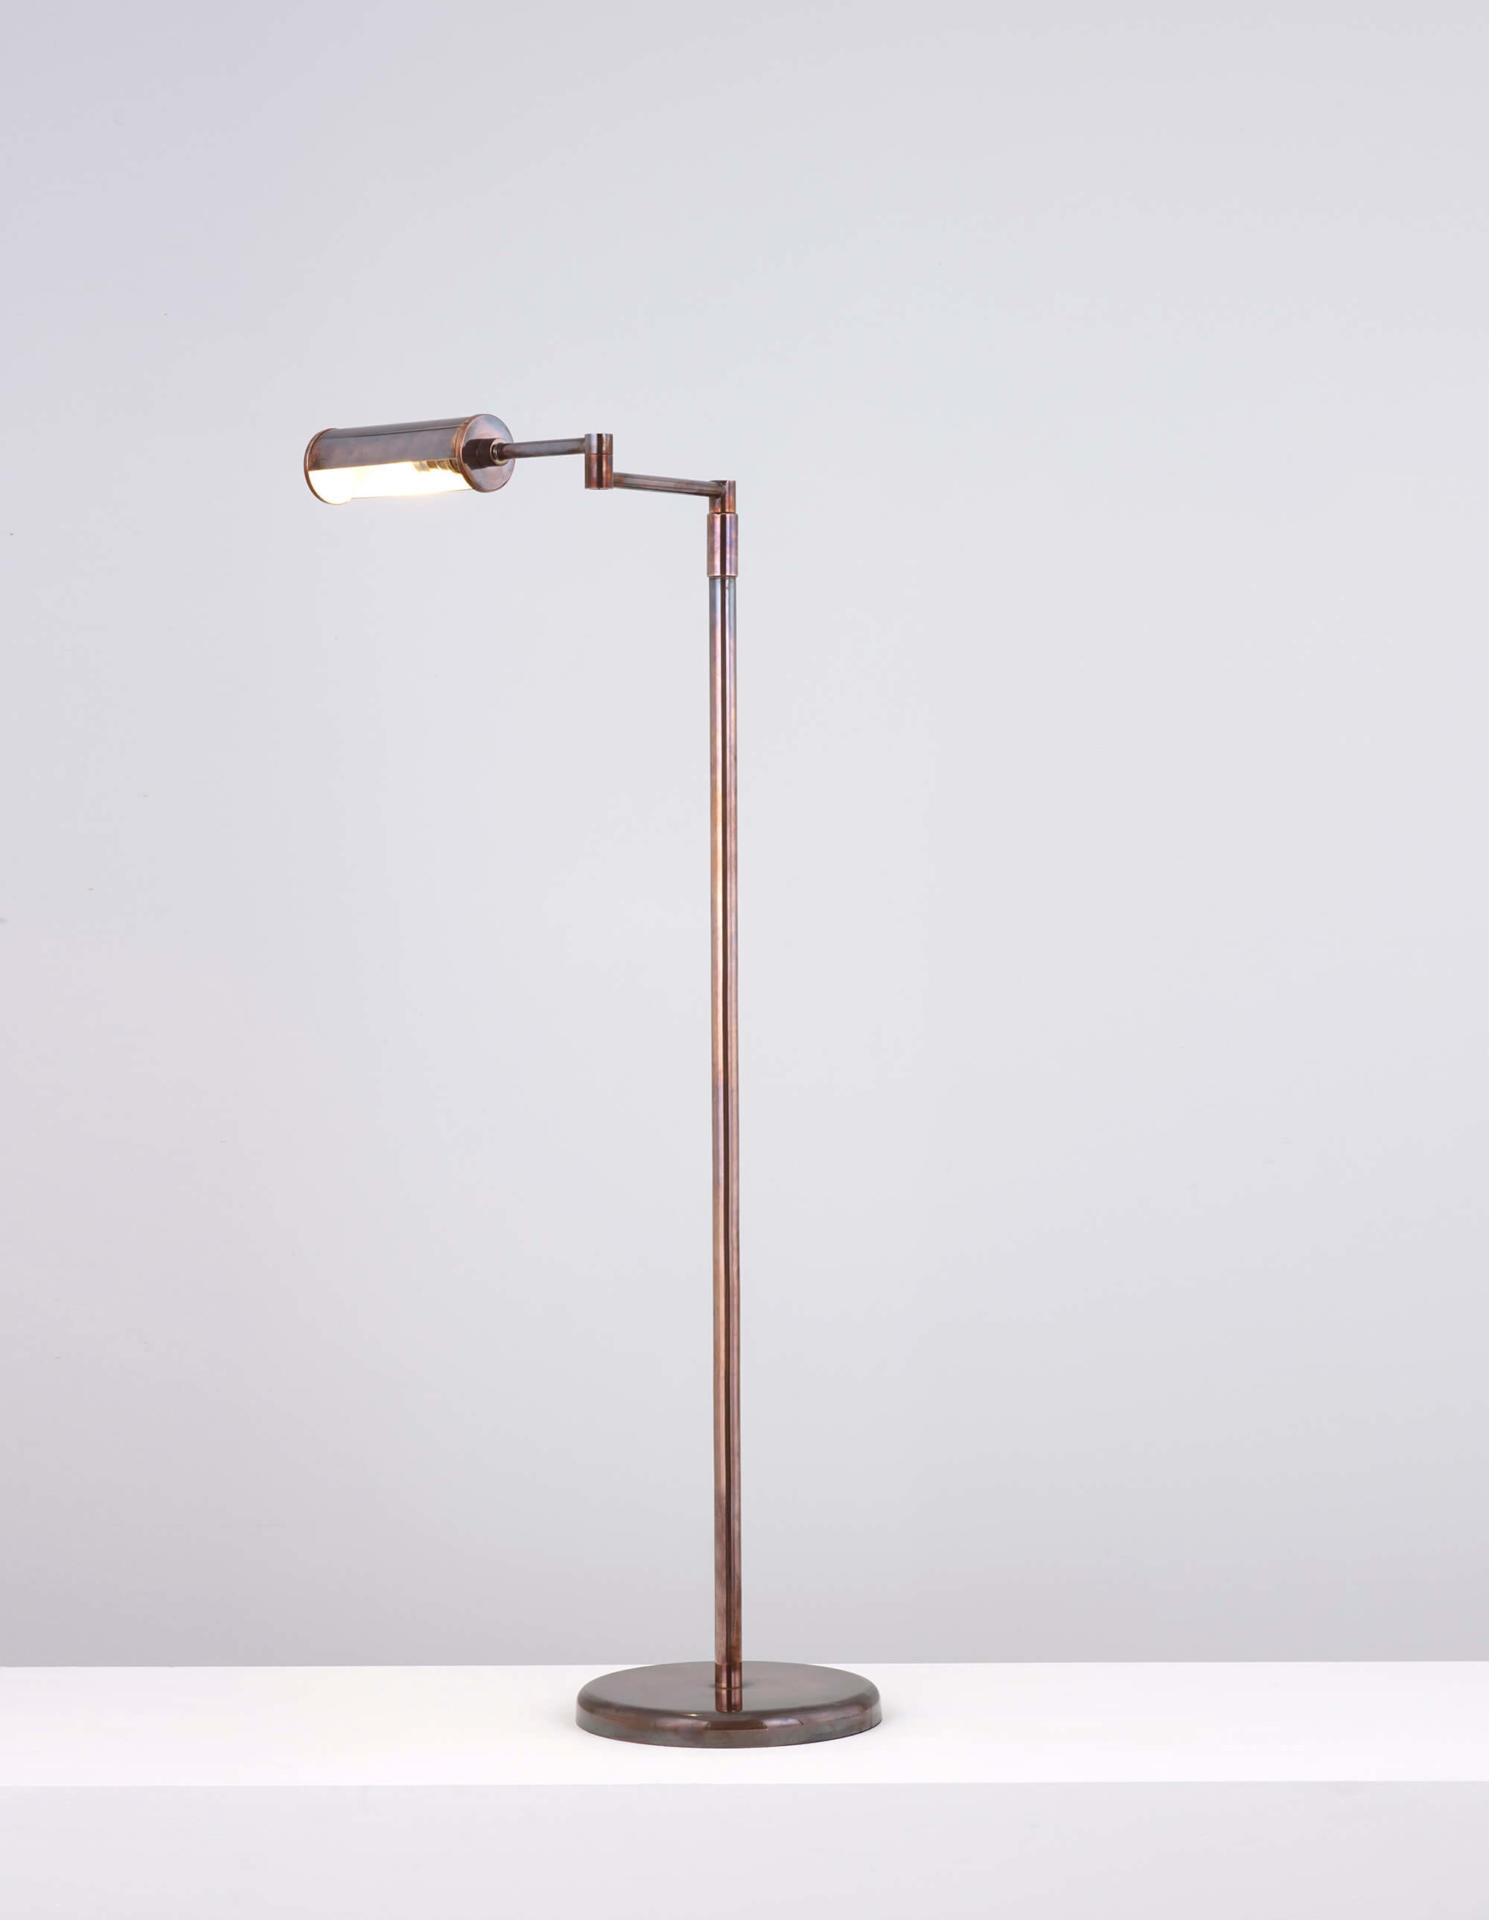 Cylinder floor lamp - an adjustable brass lamp ideal for use as a reading light